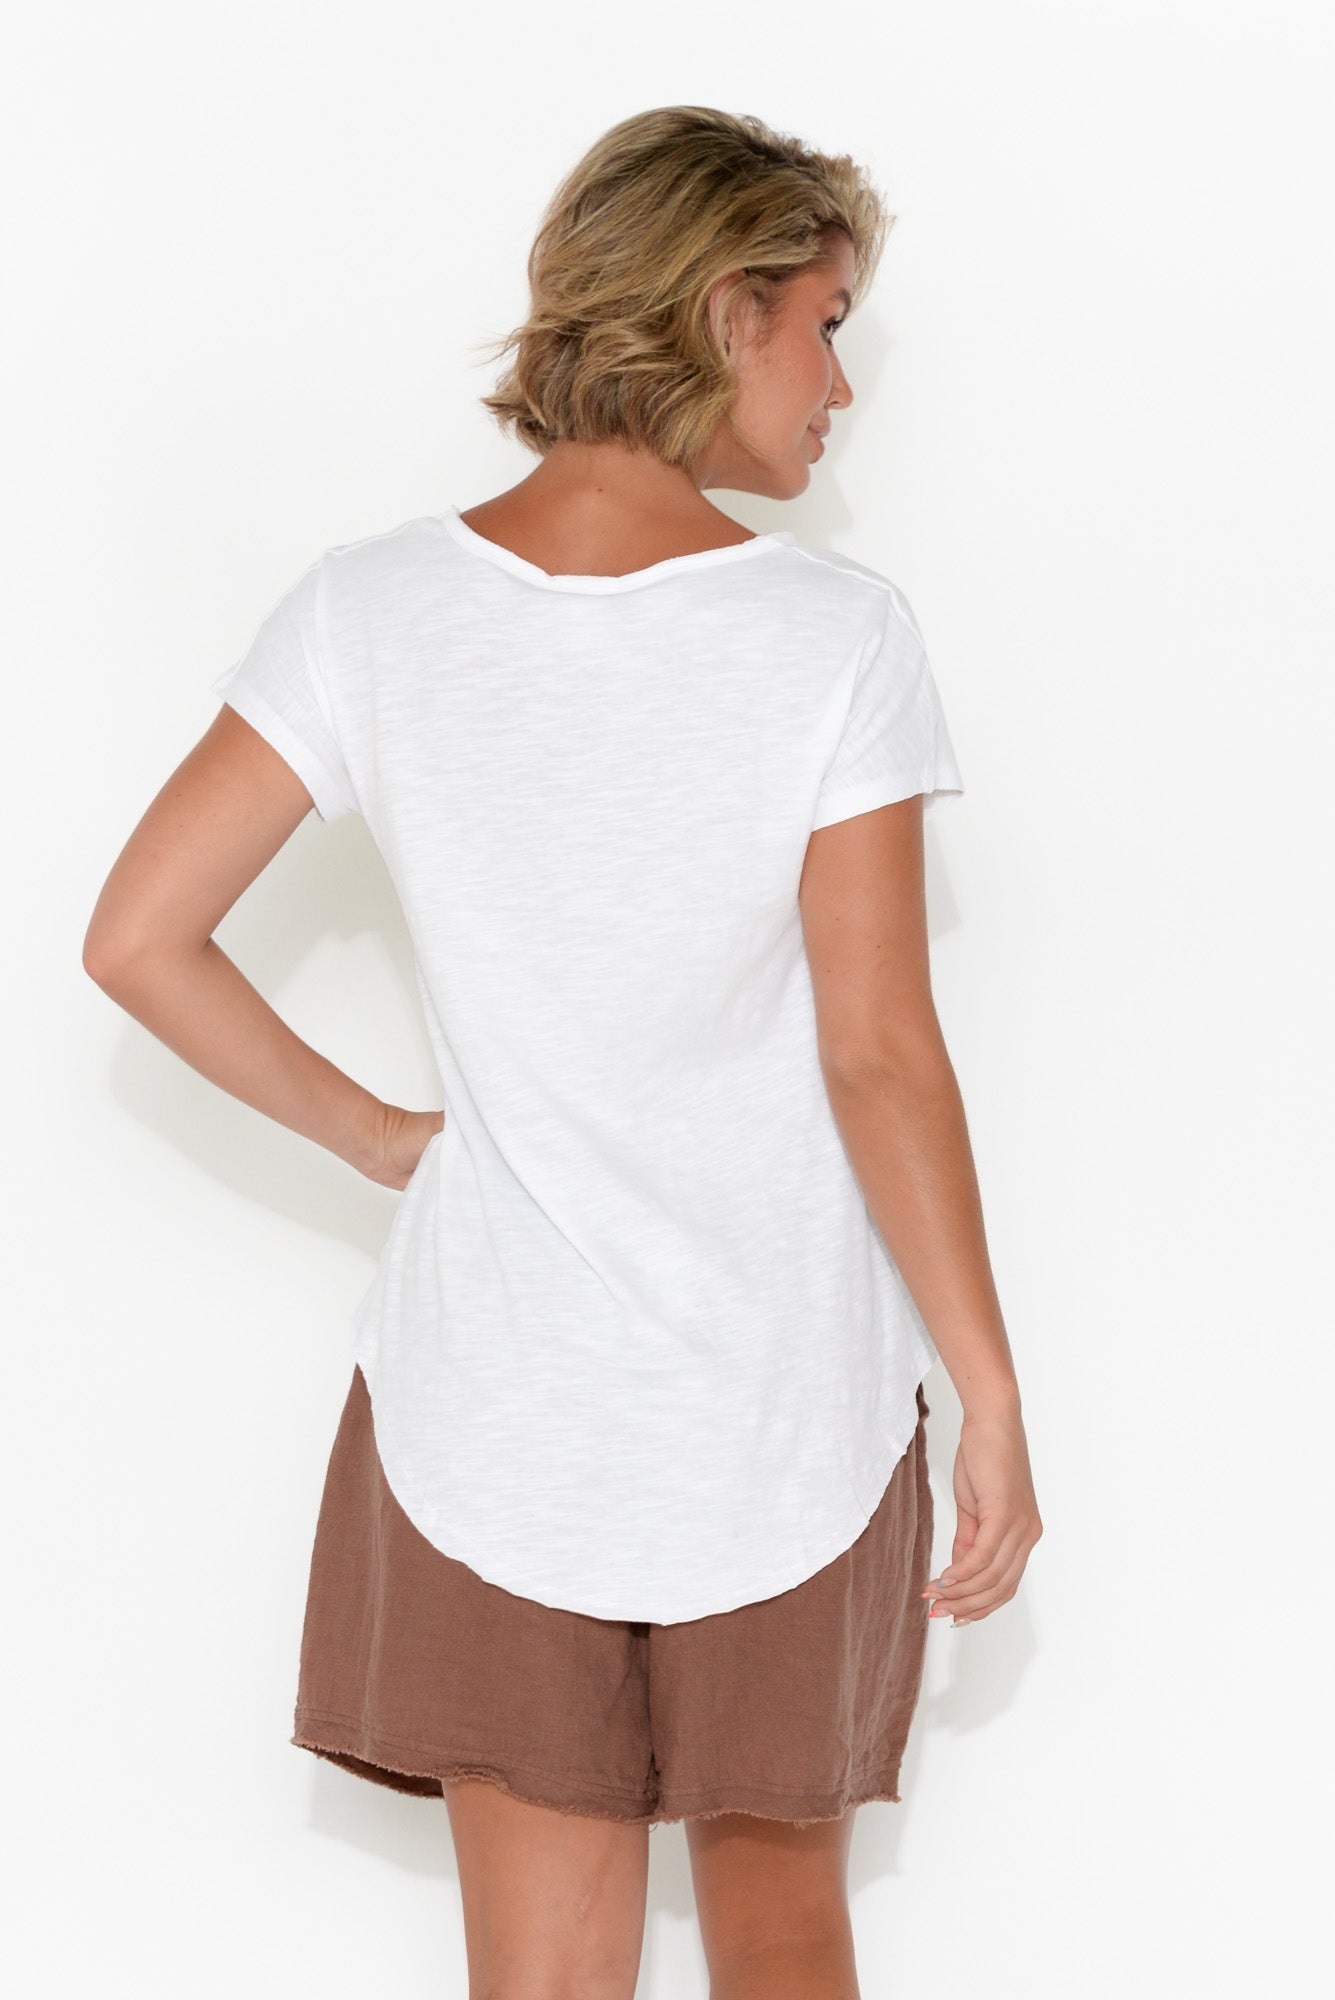 White Cotton Fundamental Vee Tee